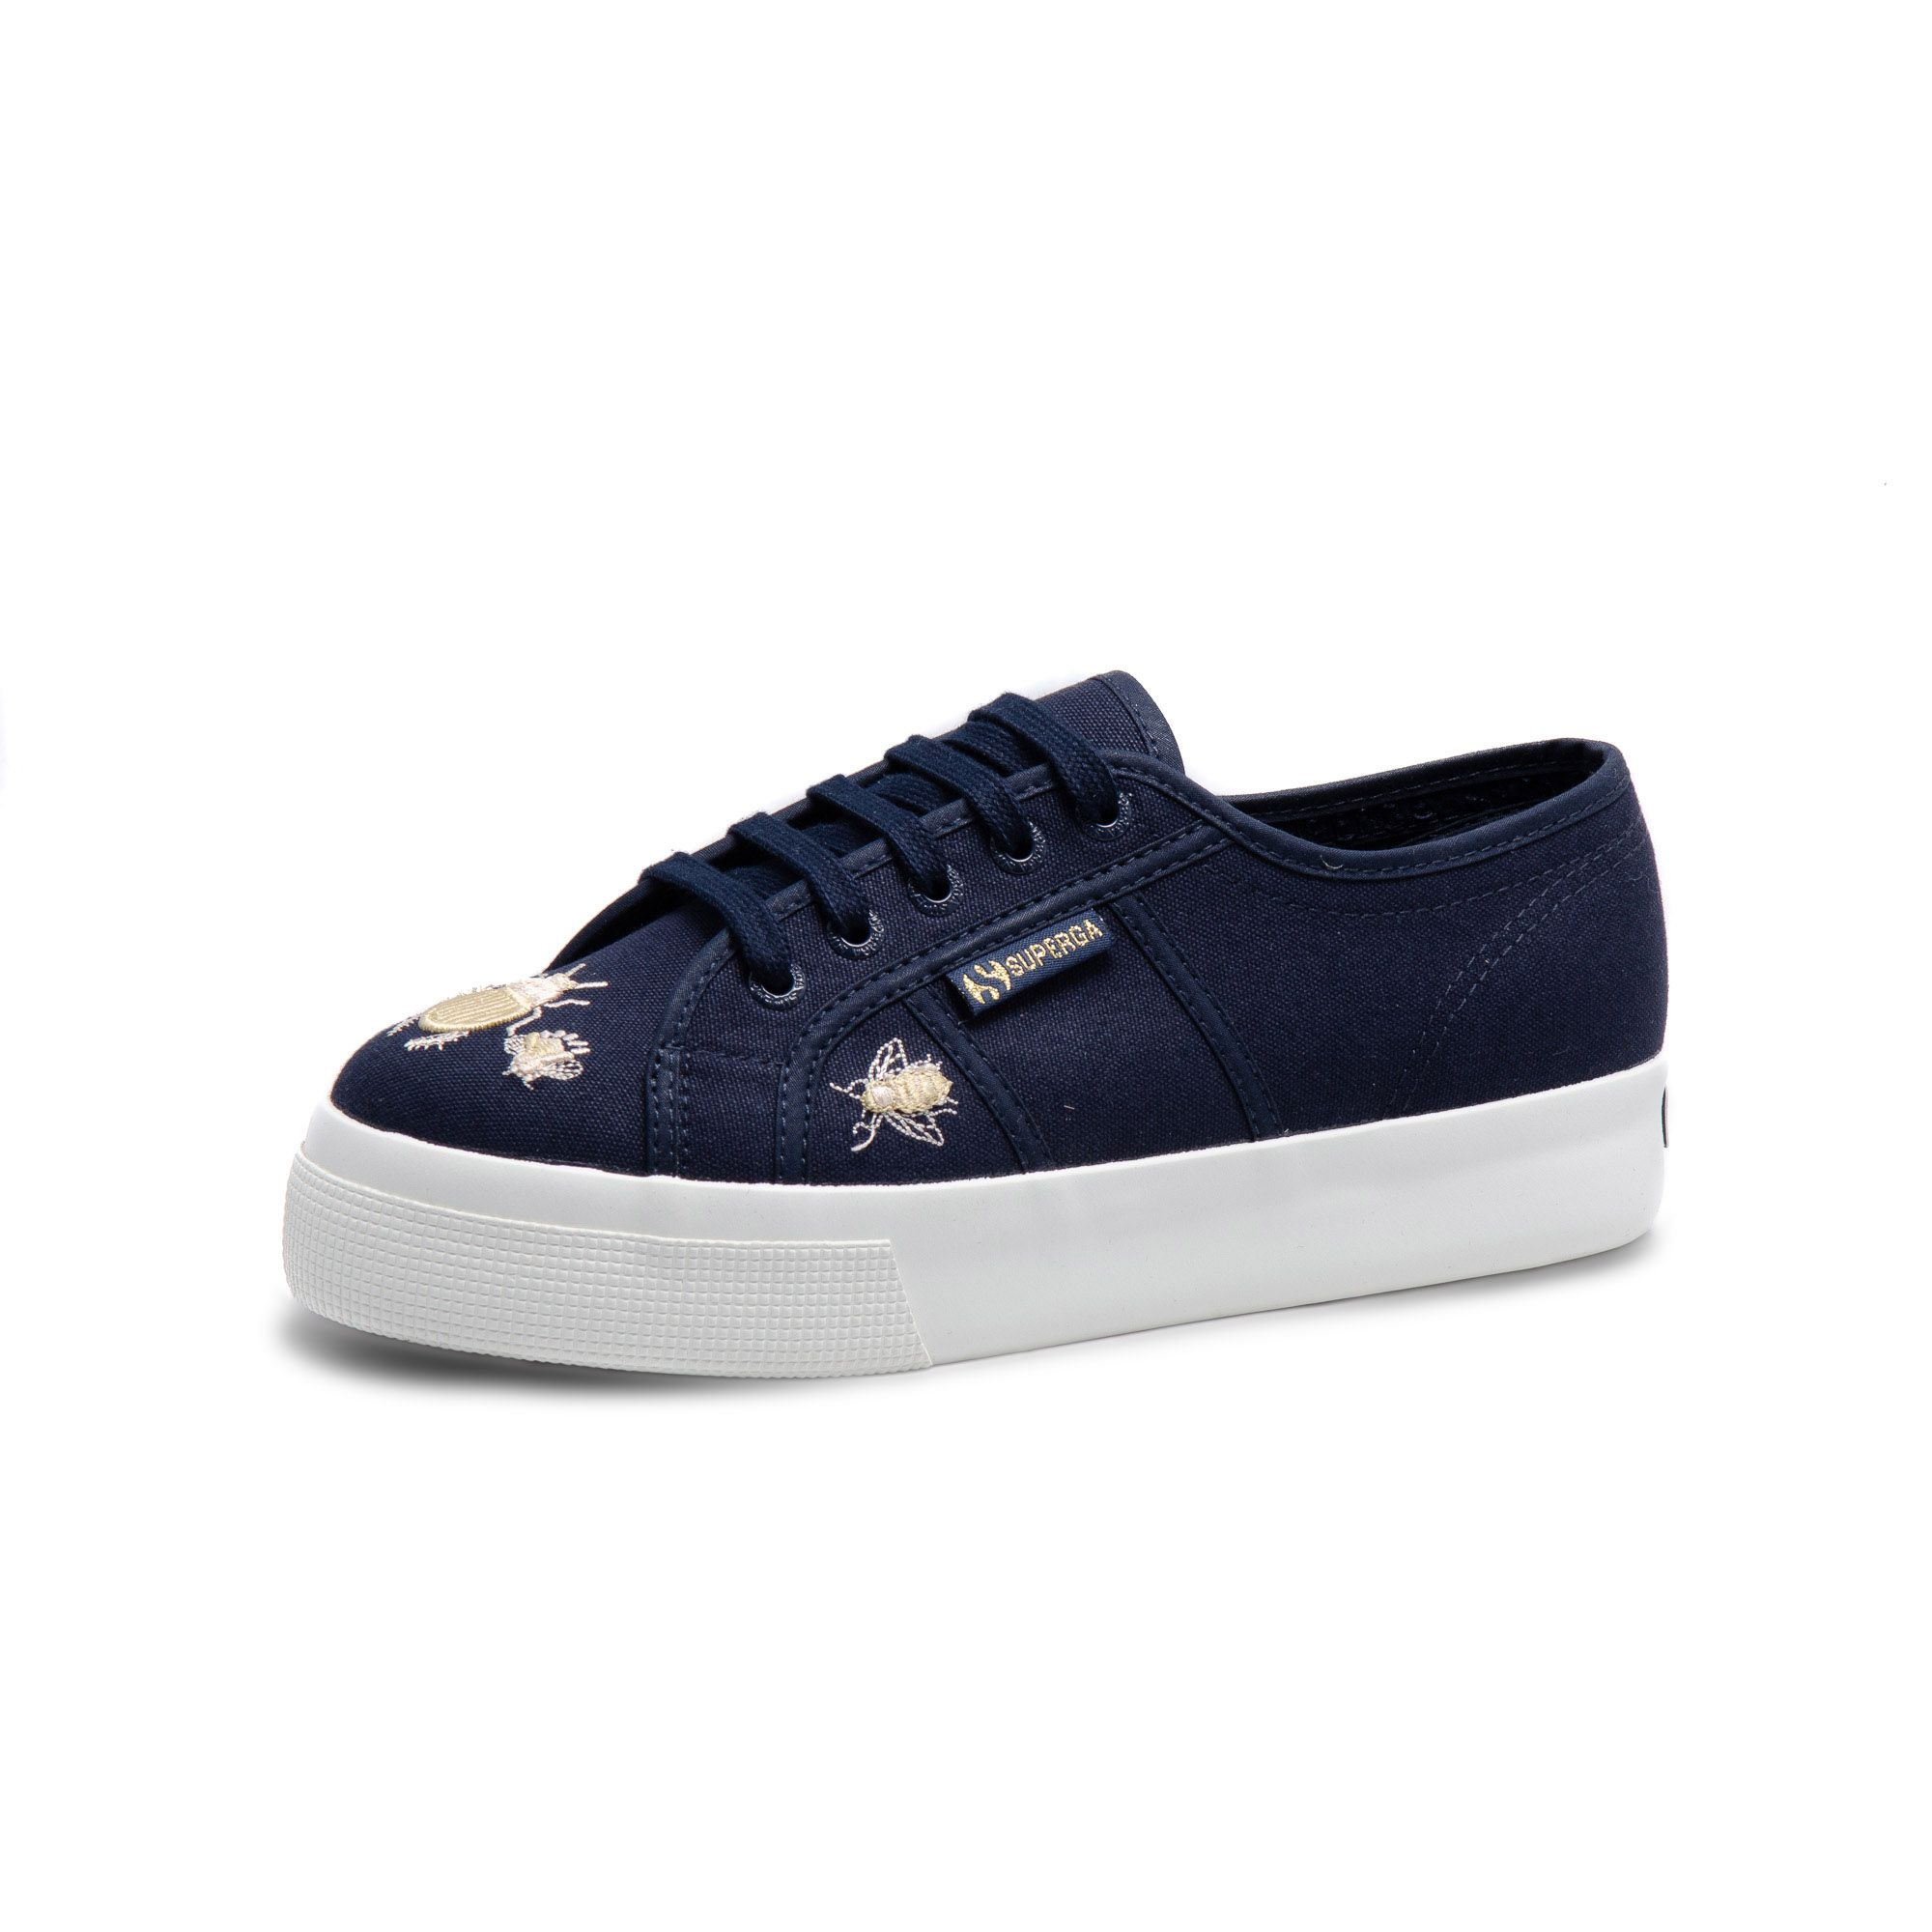 2730 INSECTEMBROIDE NAVY - GOLD INSECT